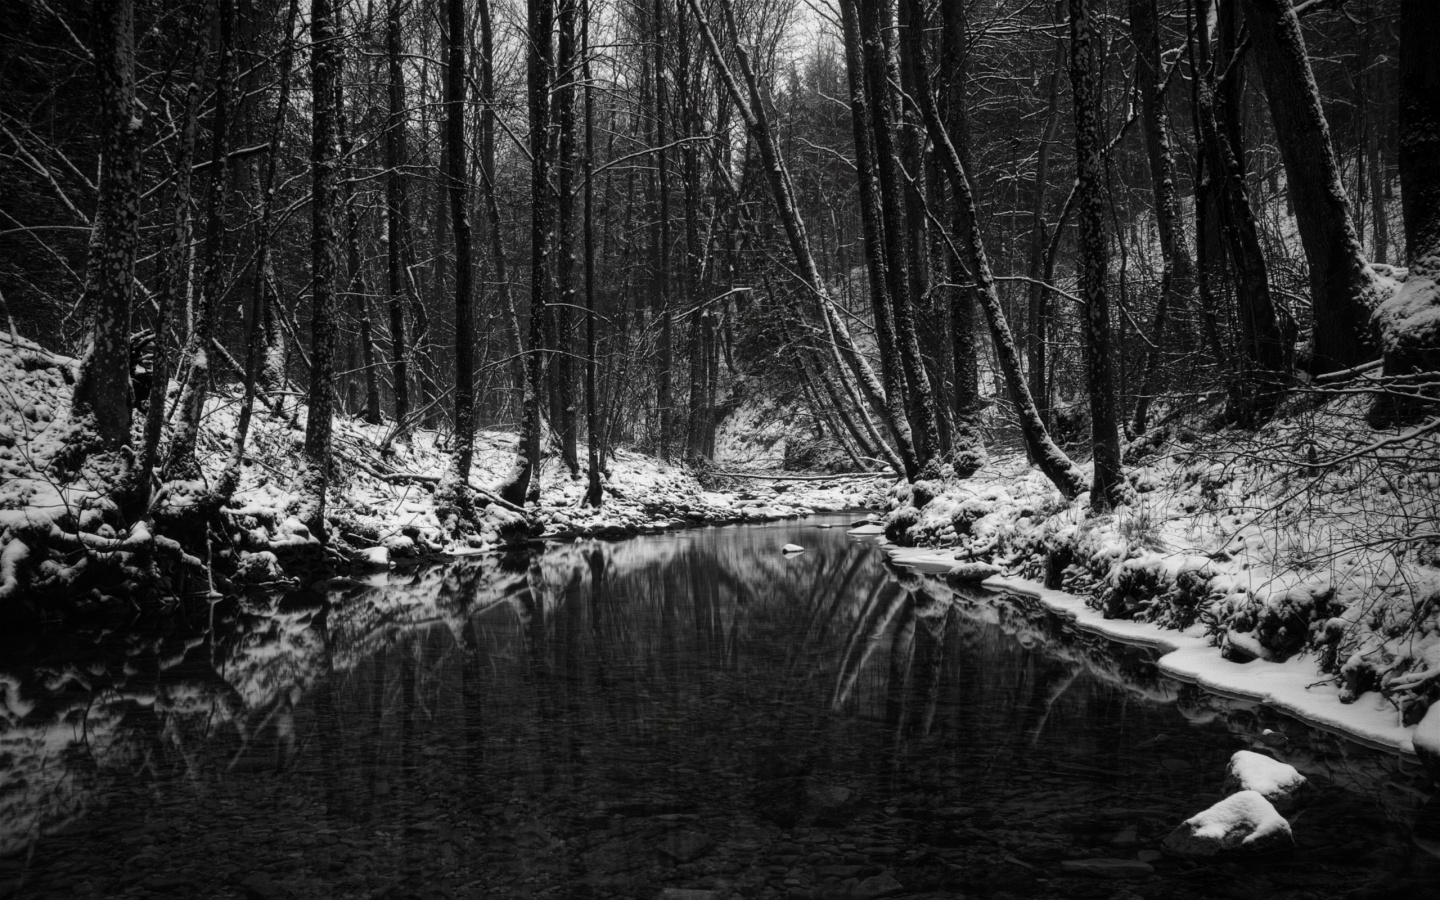 Download Stock Photos of tumblr backgrounds black and white images ...